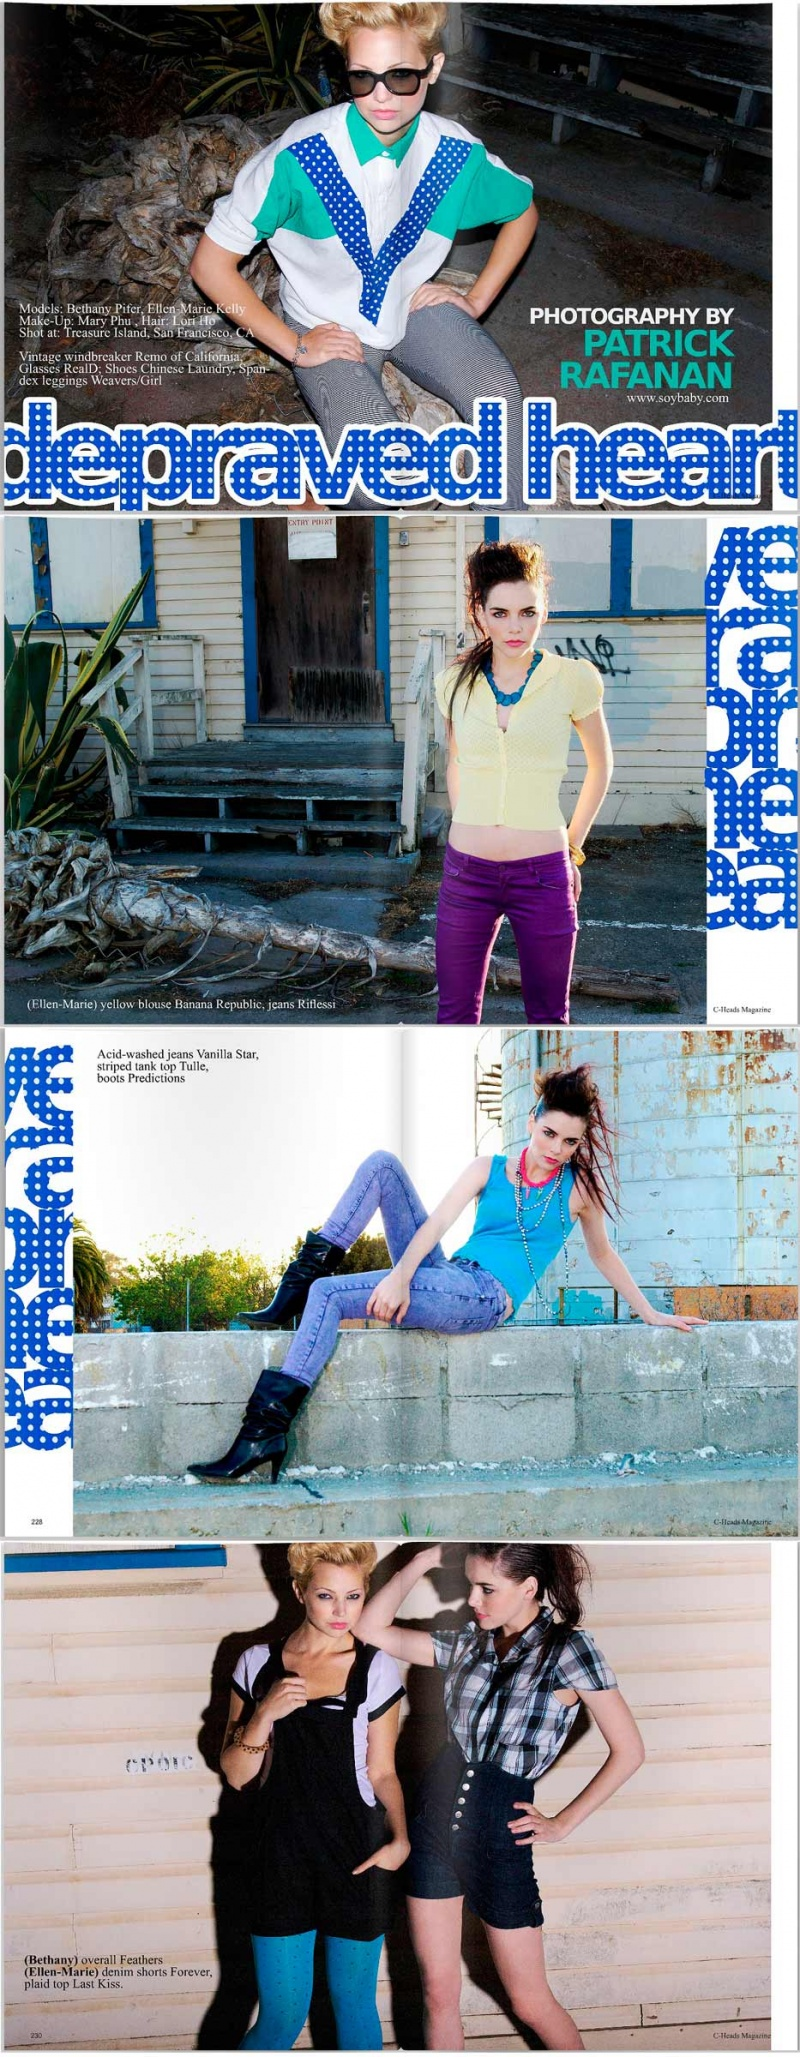 Jul 03, 2009 C-Heads Magazine #16 | makeup: Mary Phu for Sugarninjas | hair: Lori Ho | models: Bethany P & Ellen-Marie